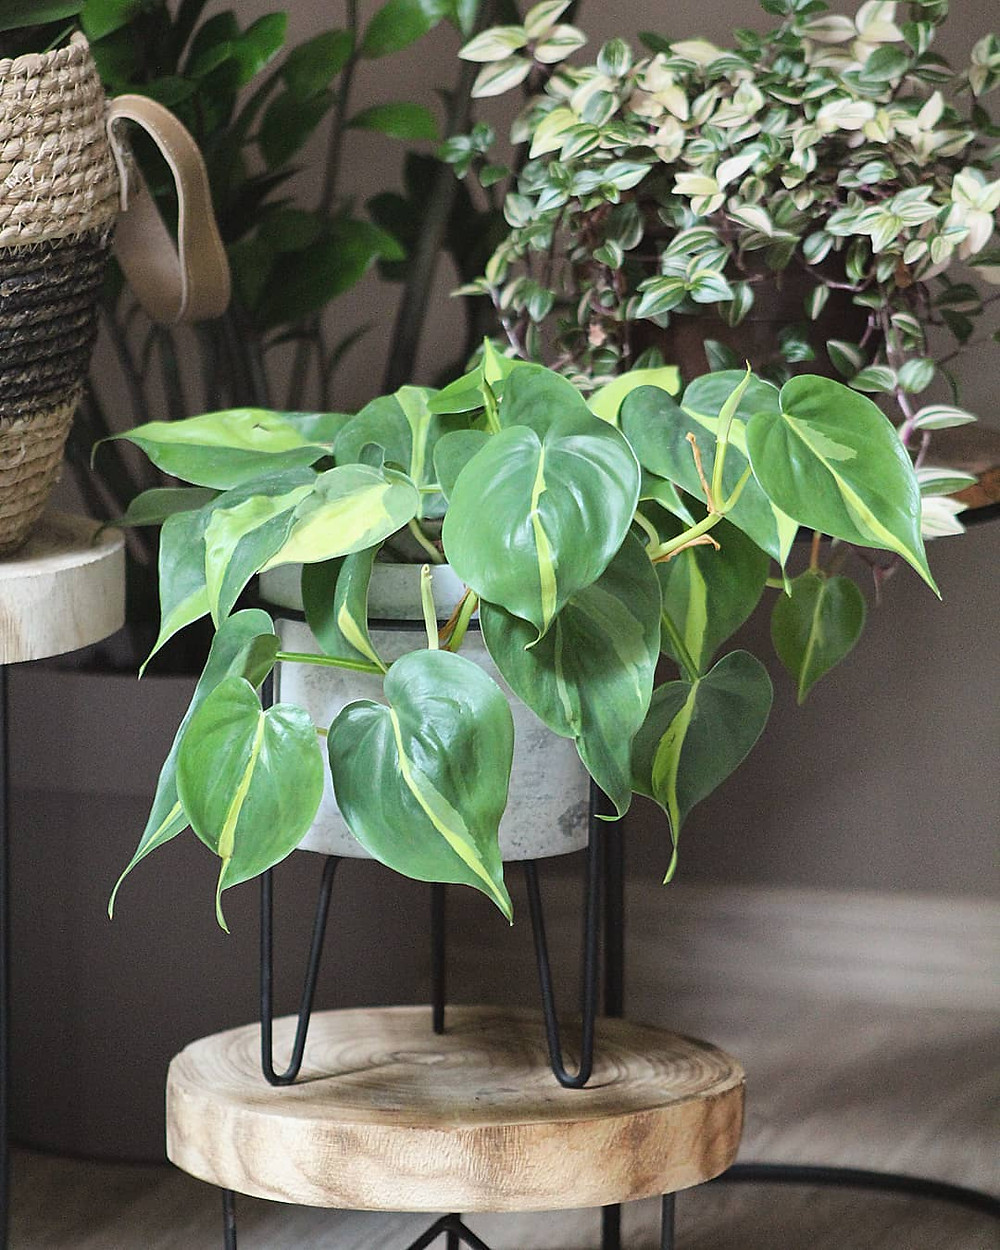 Philodendron Cheap Houseplants You Can Easily Add To Your Home